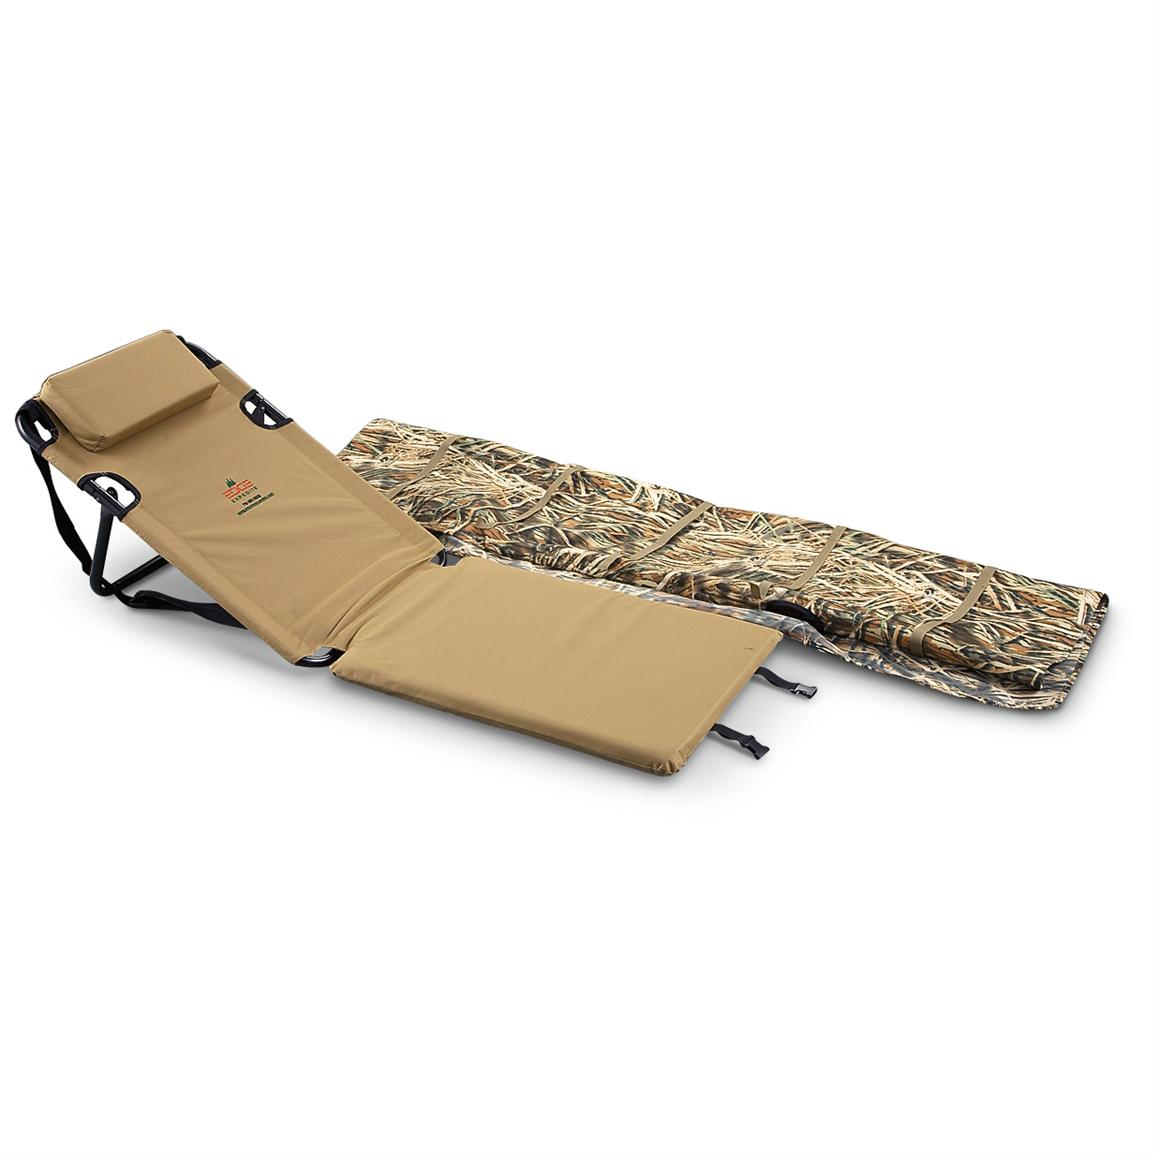 Lay Down Blinds >> Edge™ Gear Down Lay - down Blind - 158858, Waterfowl Blinds at Sportsman's Guide